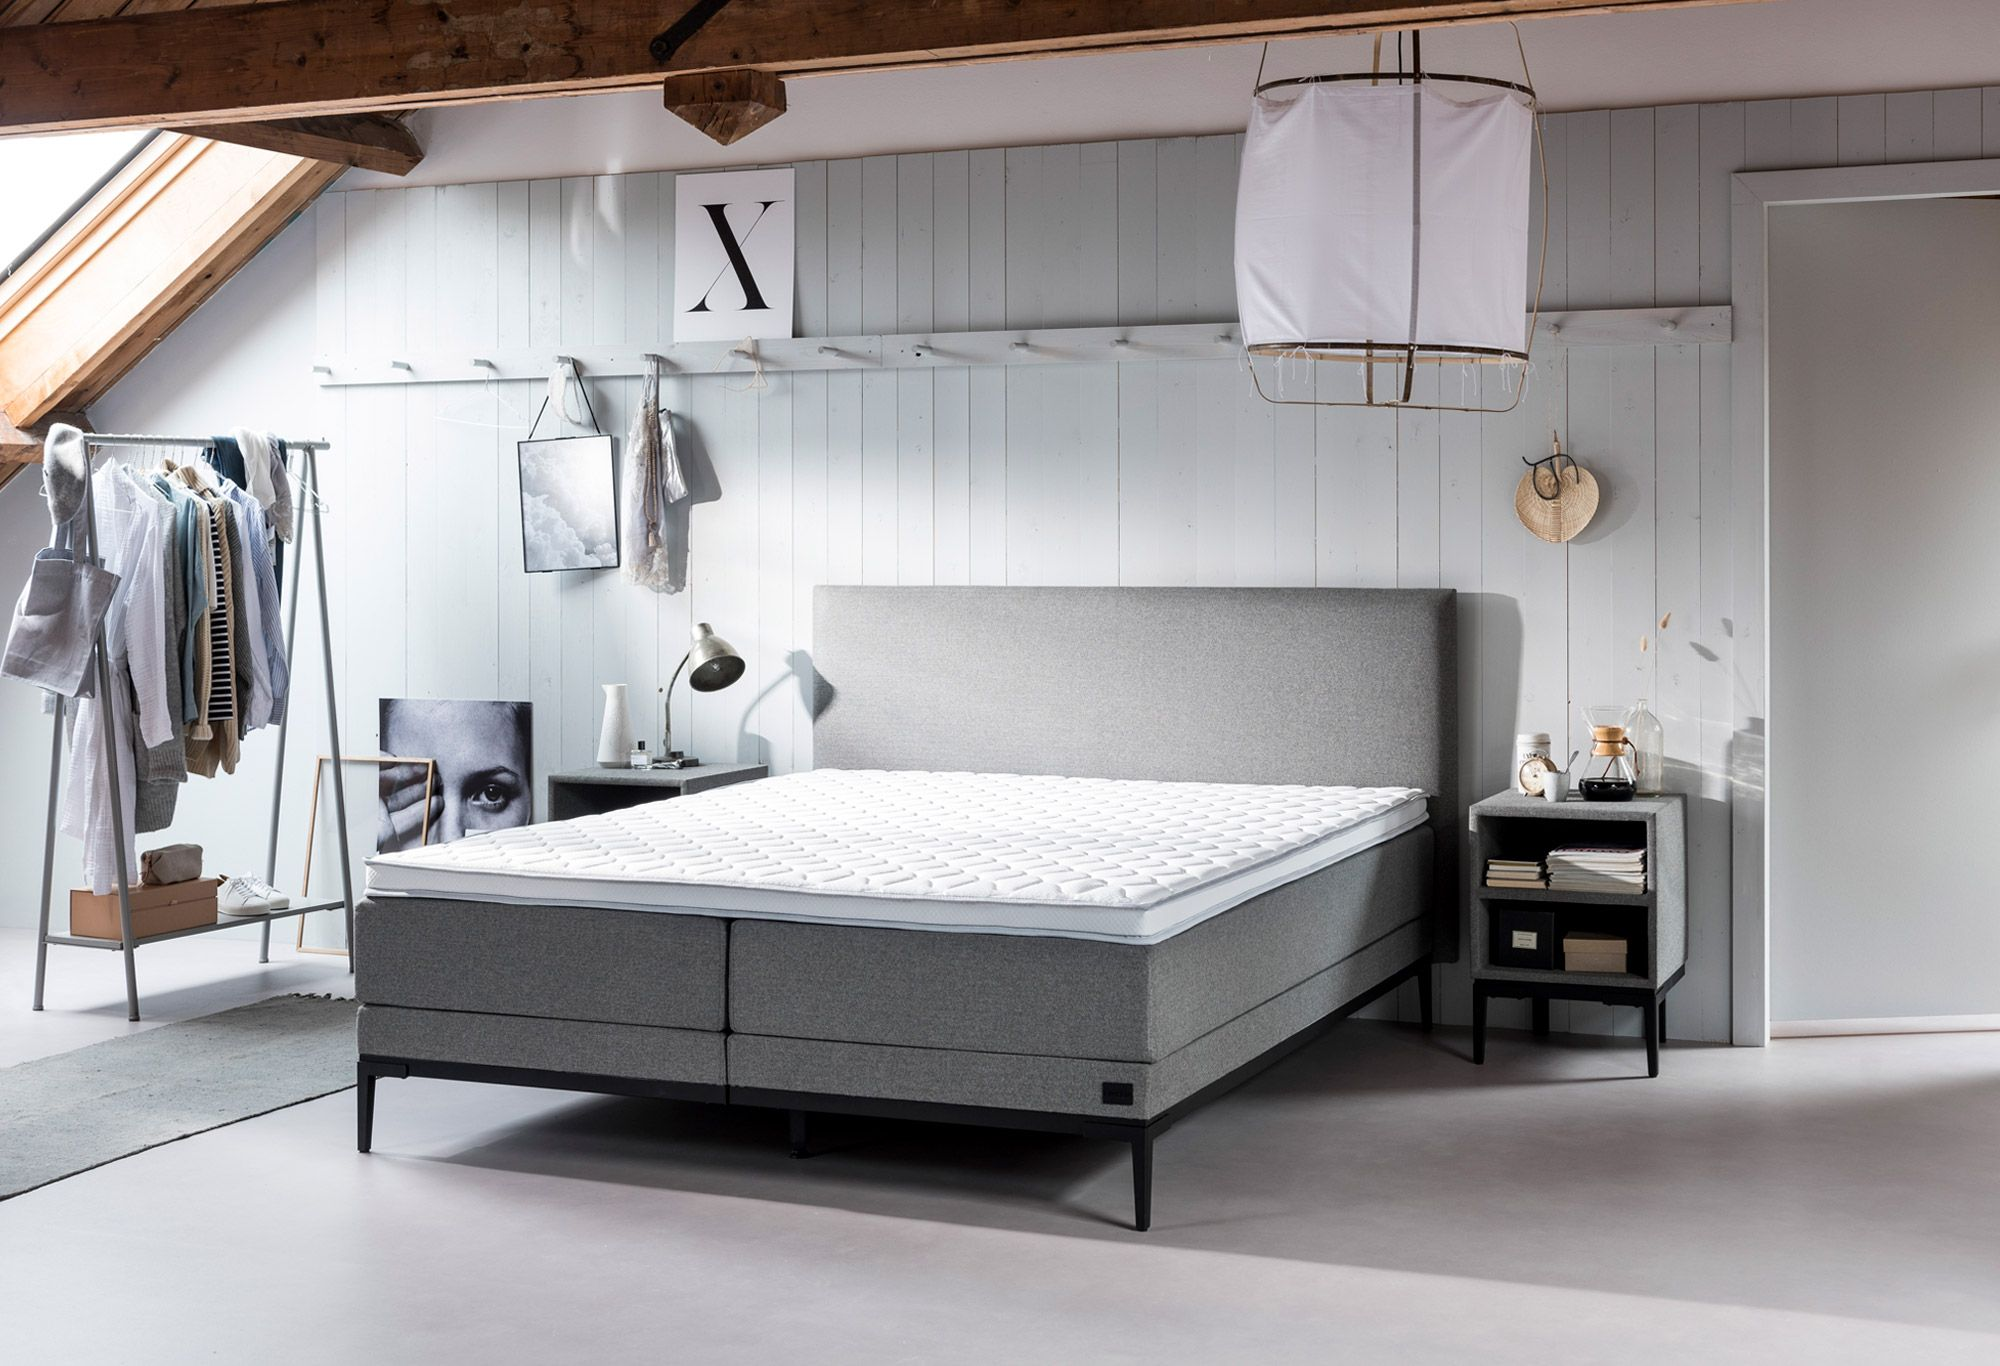 Boxspring Lifestyle By Vtwonen Thyme Slaapkamerideeen